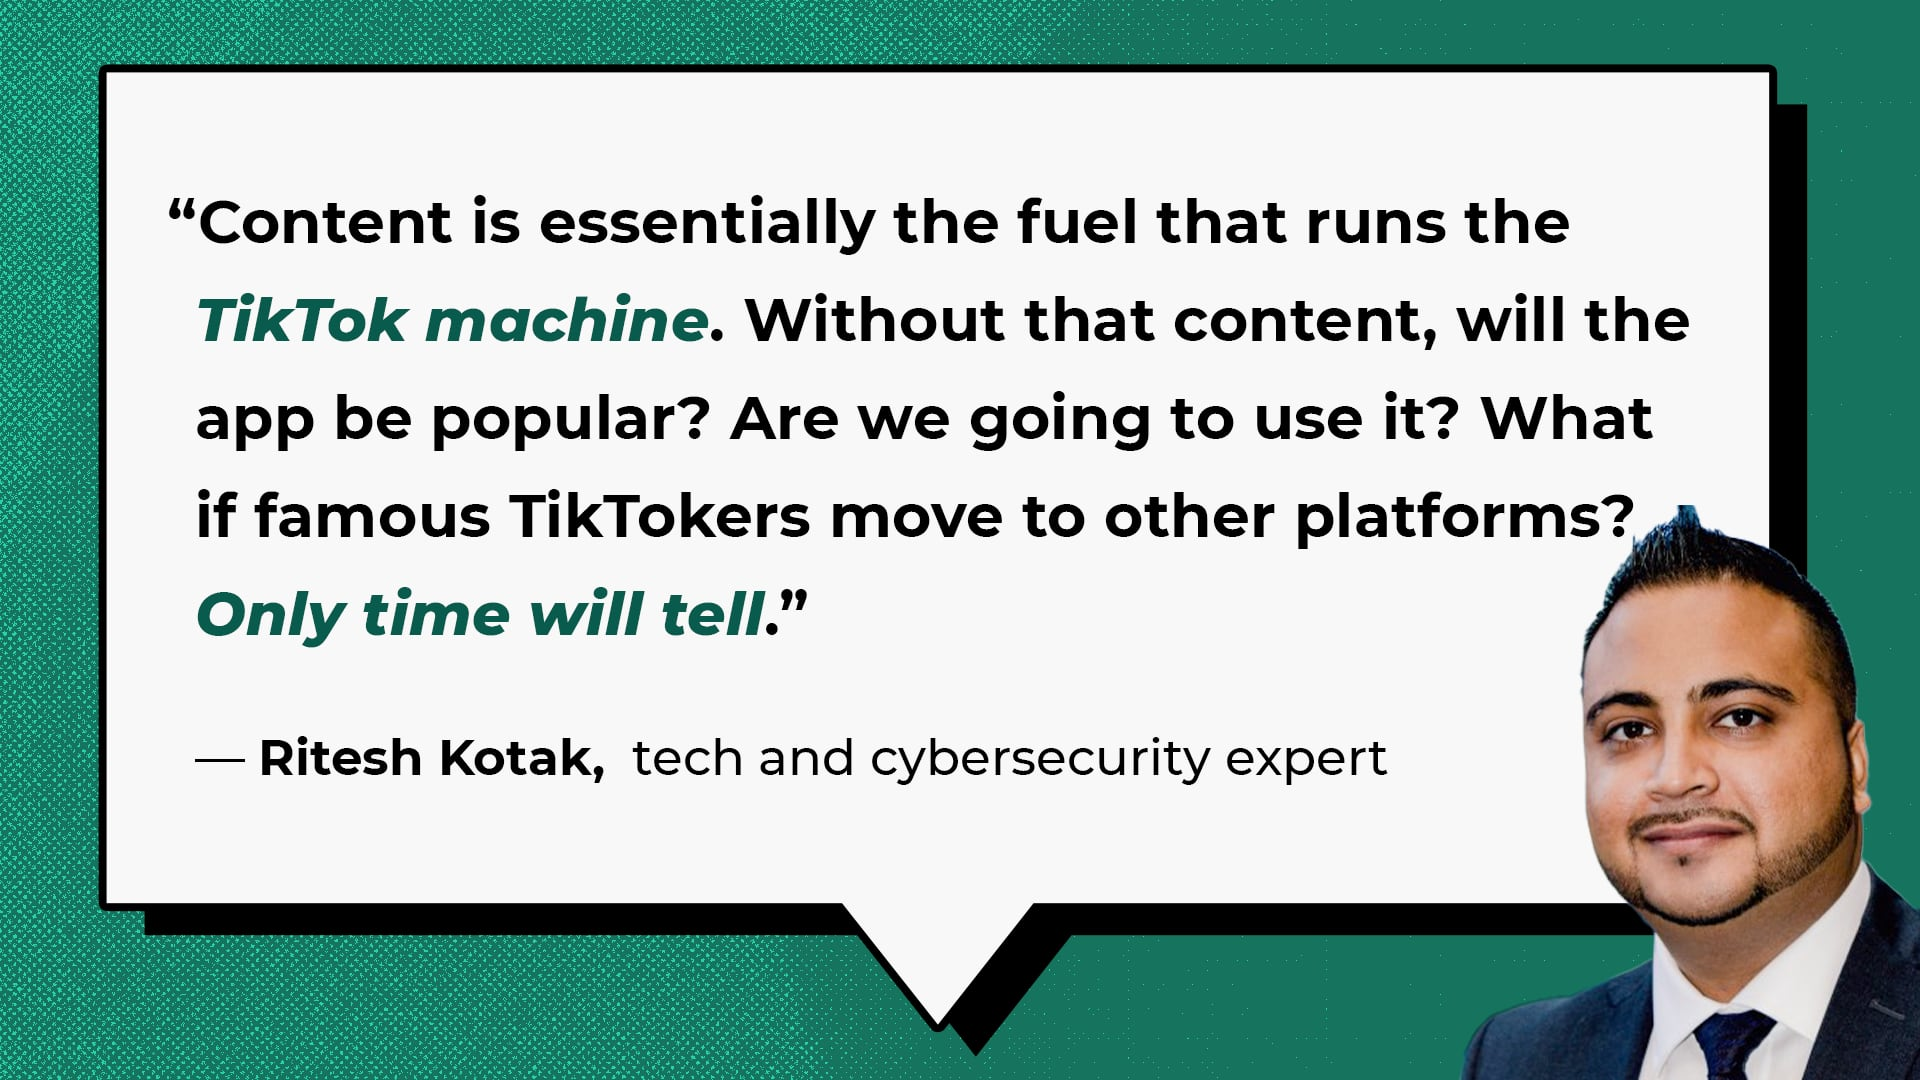 """""""Content is essentially the fuel that runs the TikTok machine,"""" said Kotak, """"Without that content, will the app be popular? Are we going to use it? What if famous TikTokers move to other platforms? Only time will tell."""" - Ritesh Kotak, Cybersecurity Expert"""